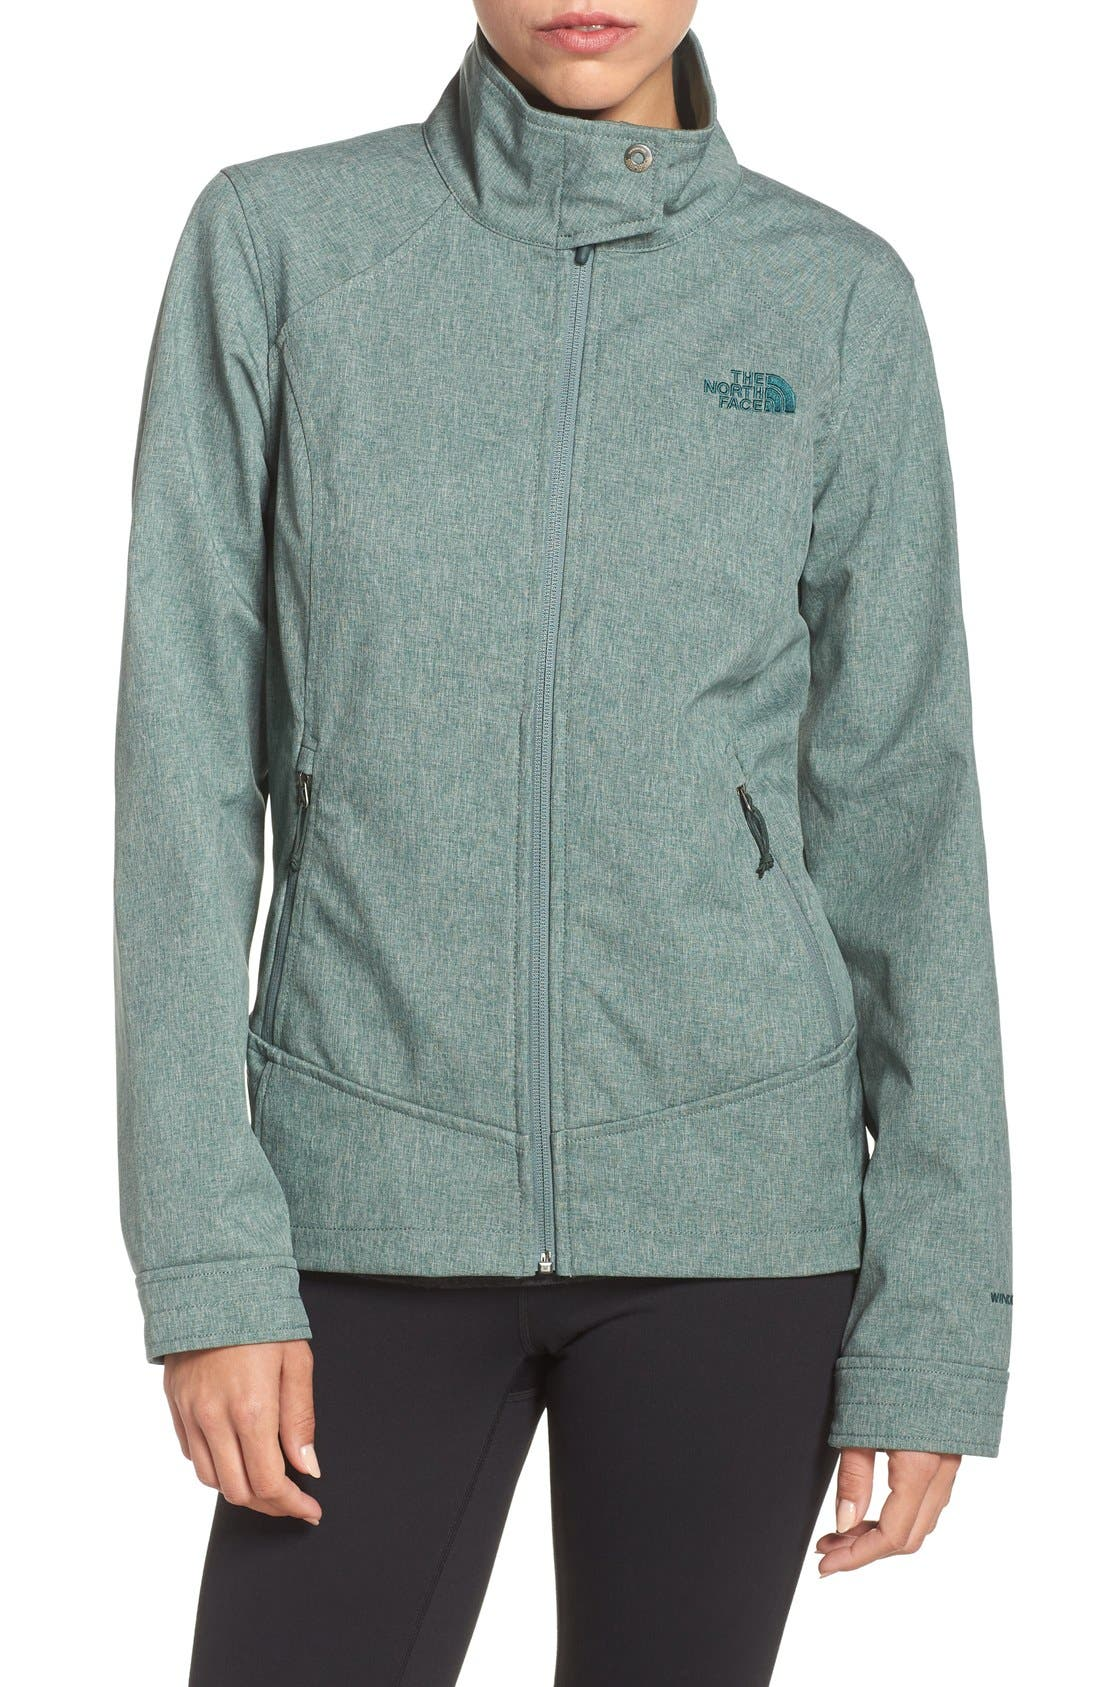 Alternate Image 1 Selected - The North Face 'Calentito 2' Soft Shell Jacket